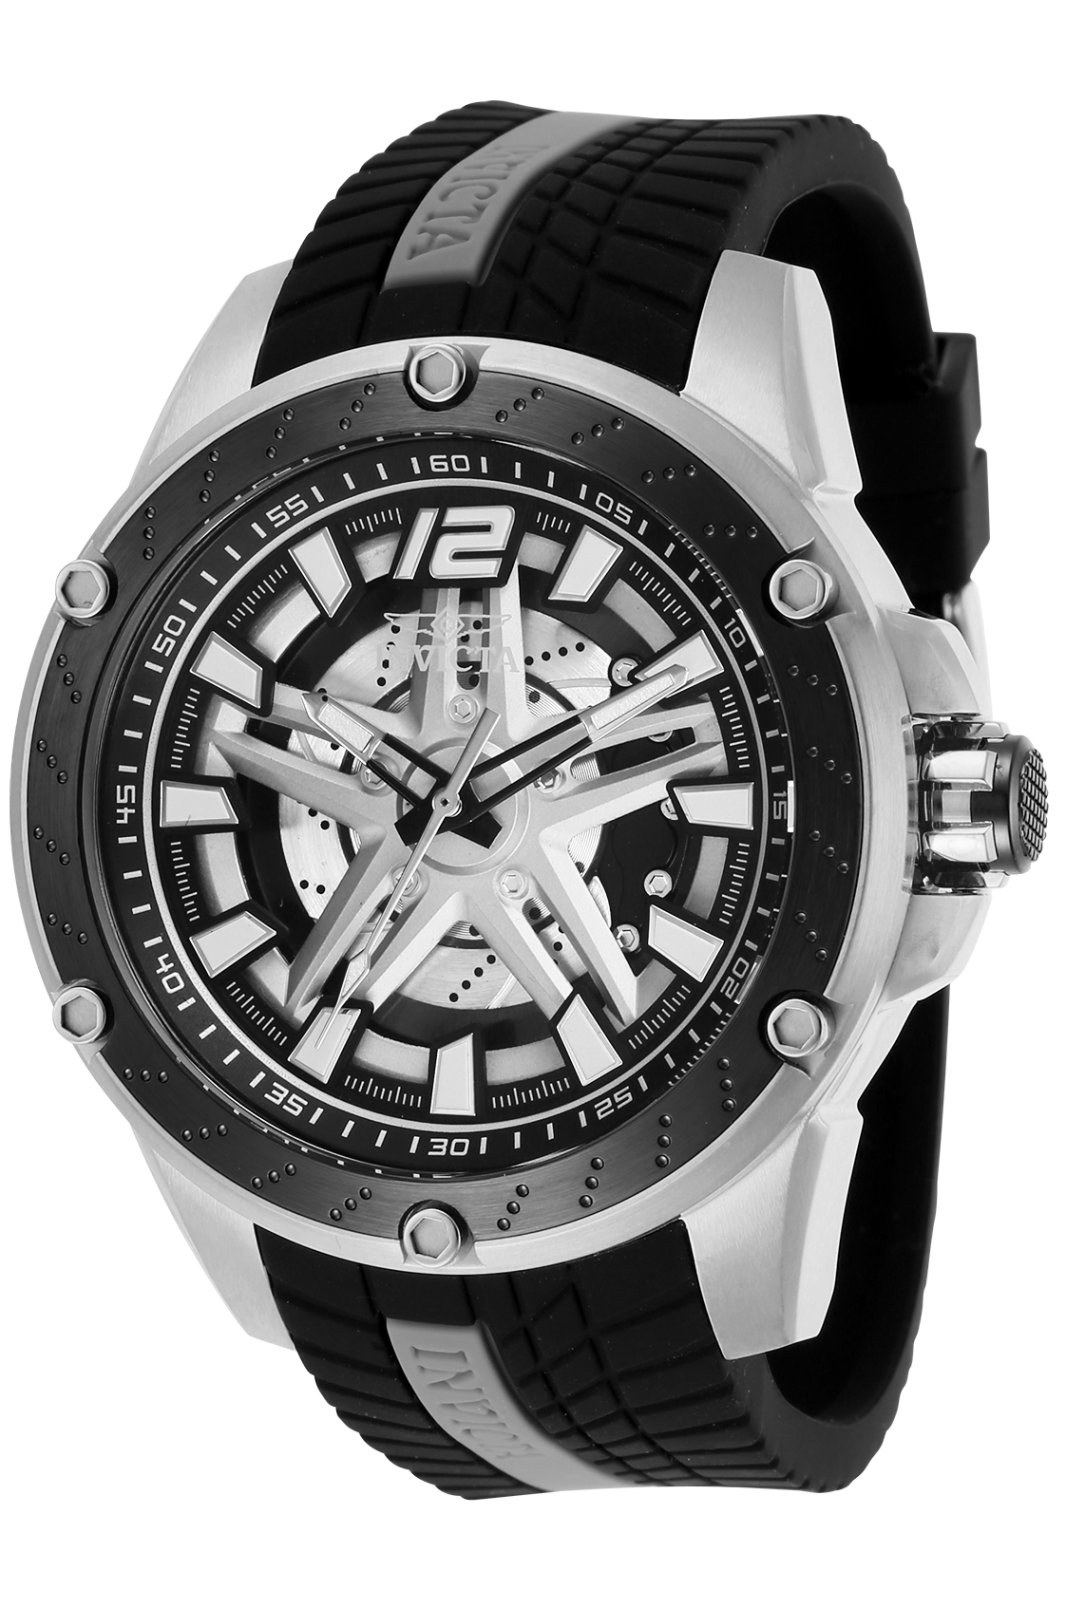 Invicta S1 Rally - Race Team 28301 Men's Watch - 50mm